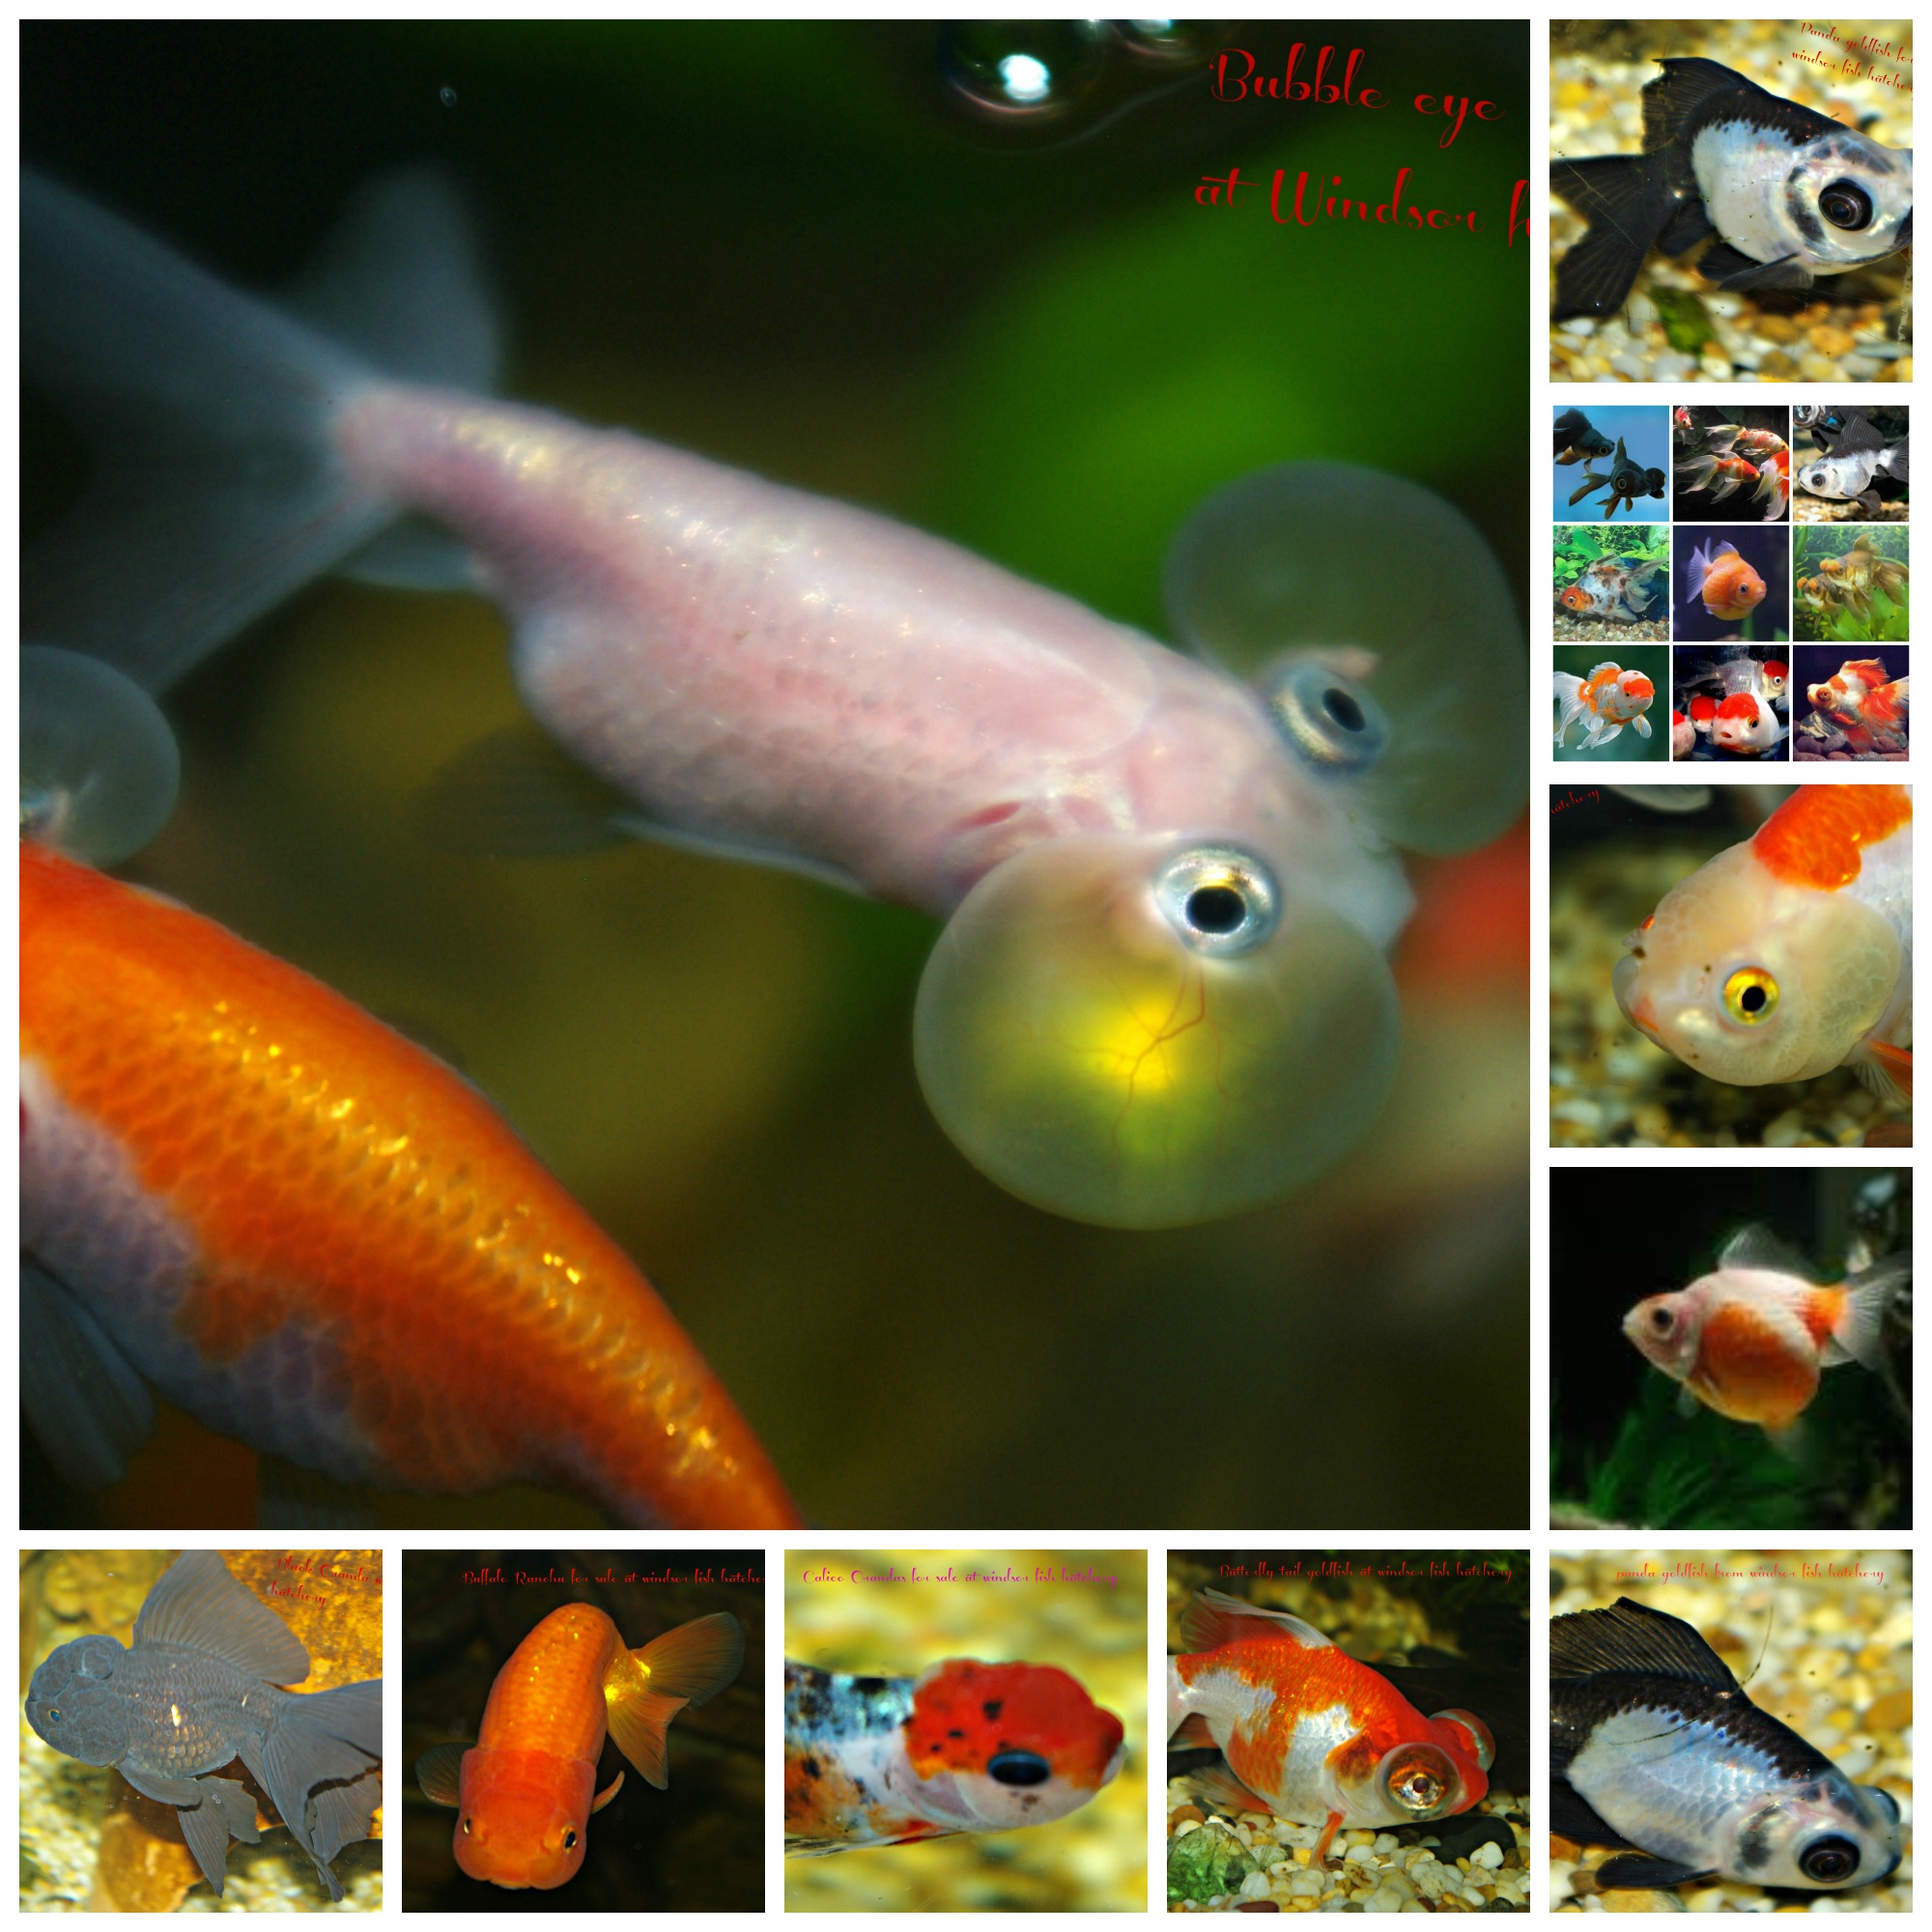 a-goldfish-for-sale-at-windosor-fish-hatchery-collage-feb-7.jpg